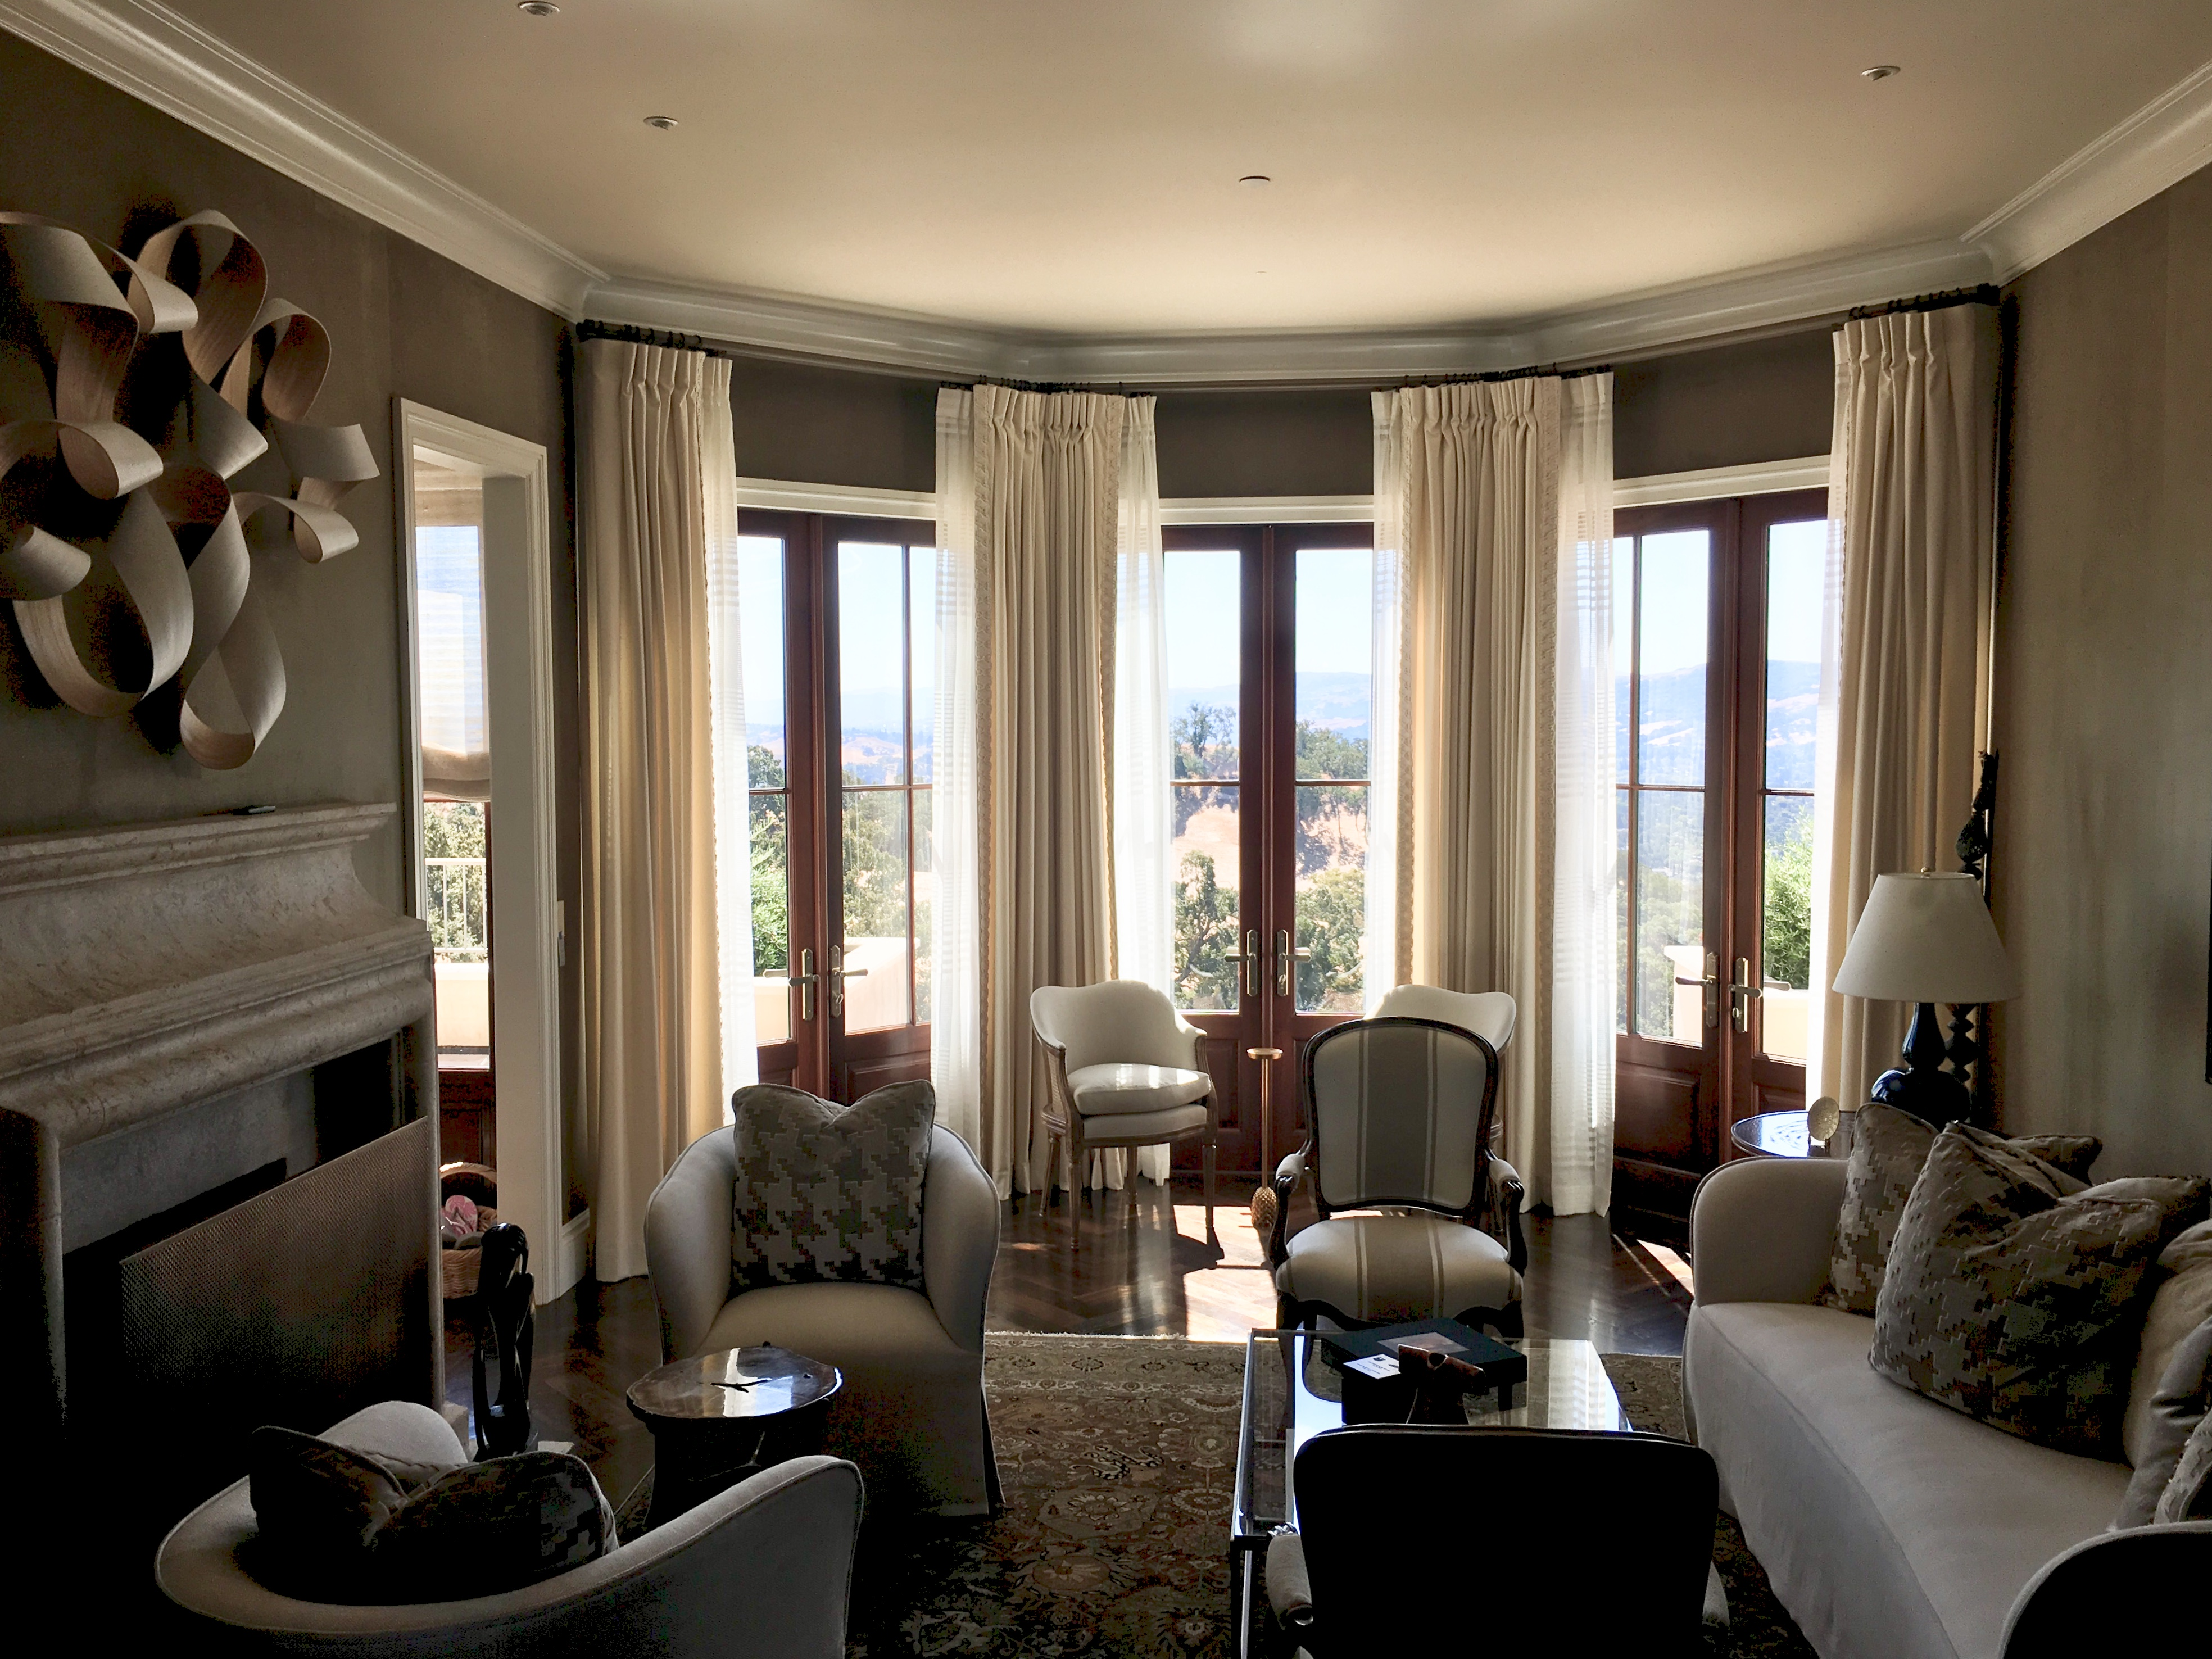 5 Things To Consider When Choosing Curtains Or Drapes For Your Home